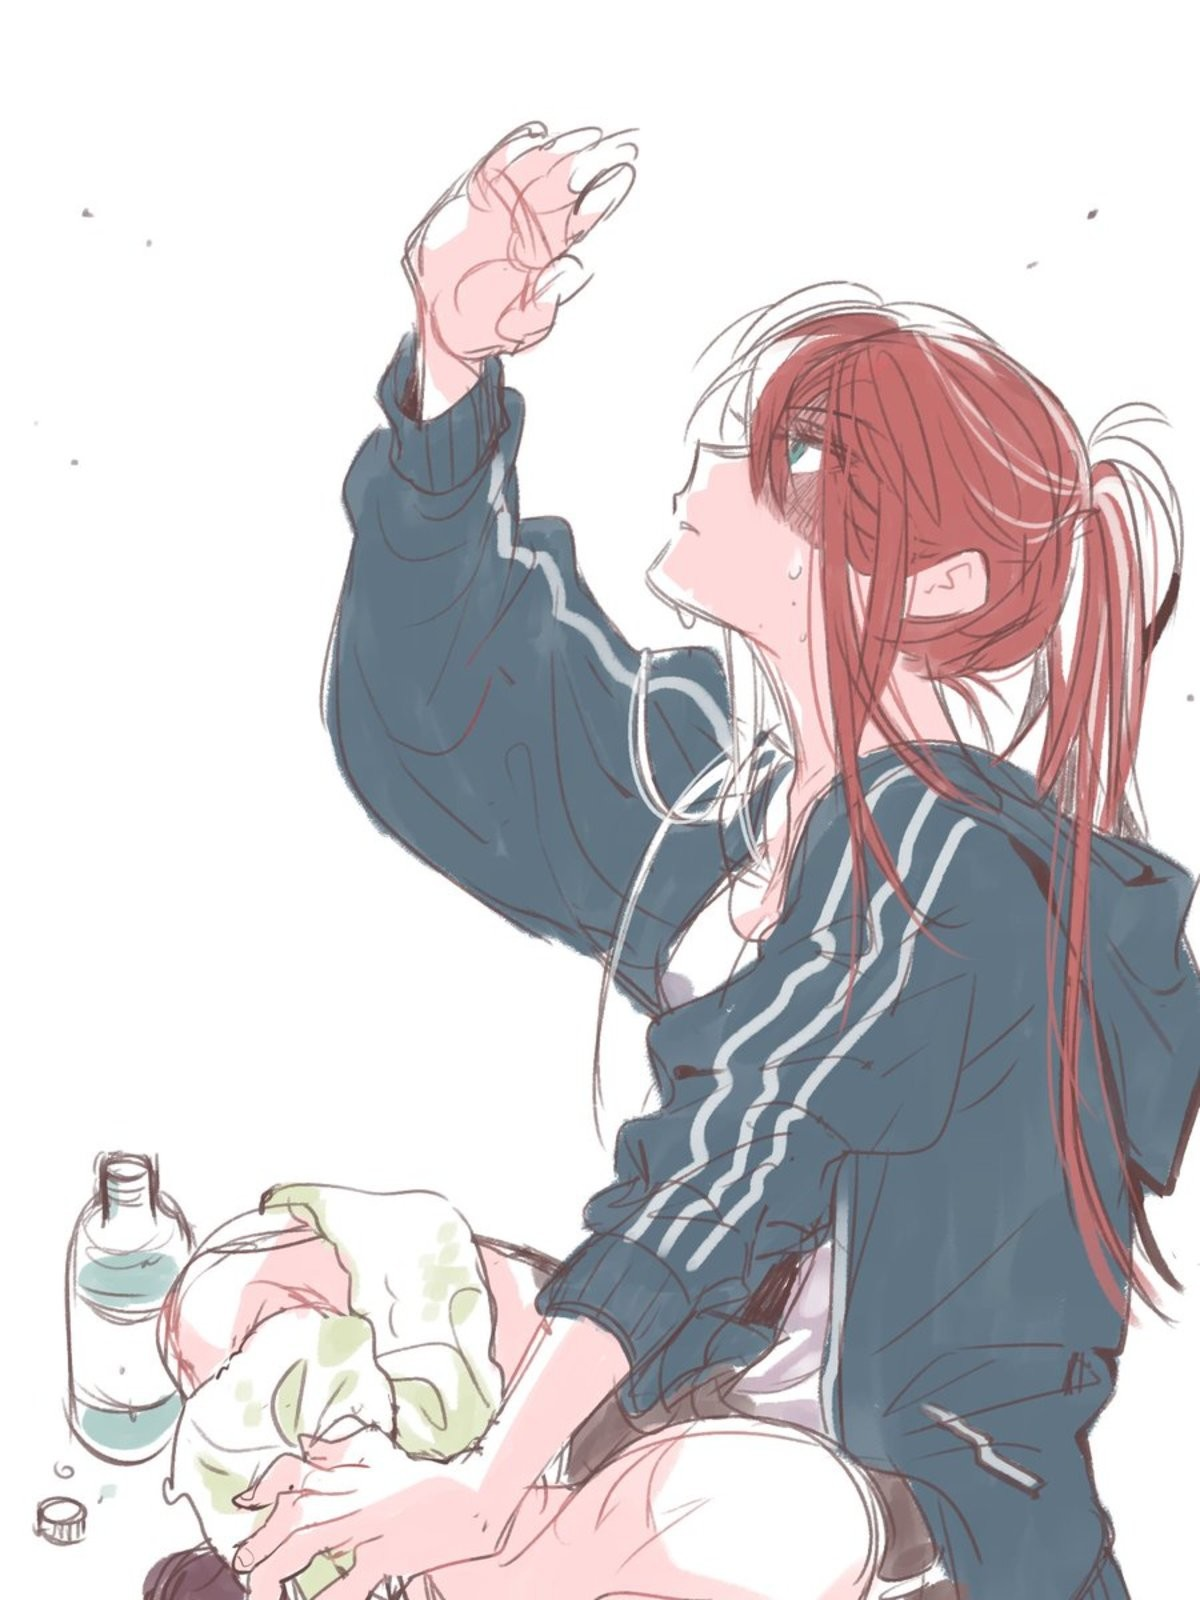 Shoko(?) Todoroki. Just discovered the R63 channel today, here's my contribution.